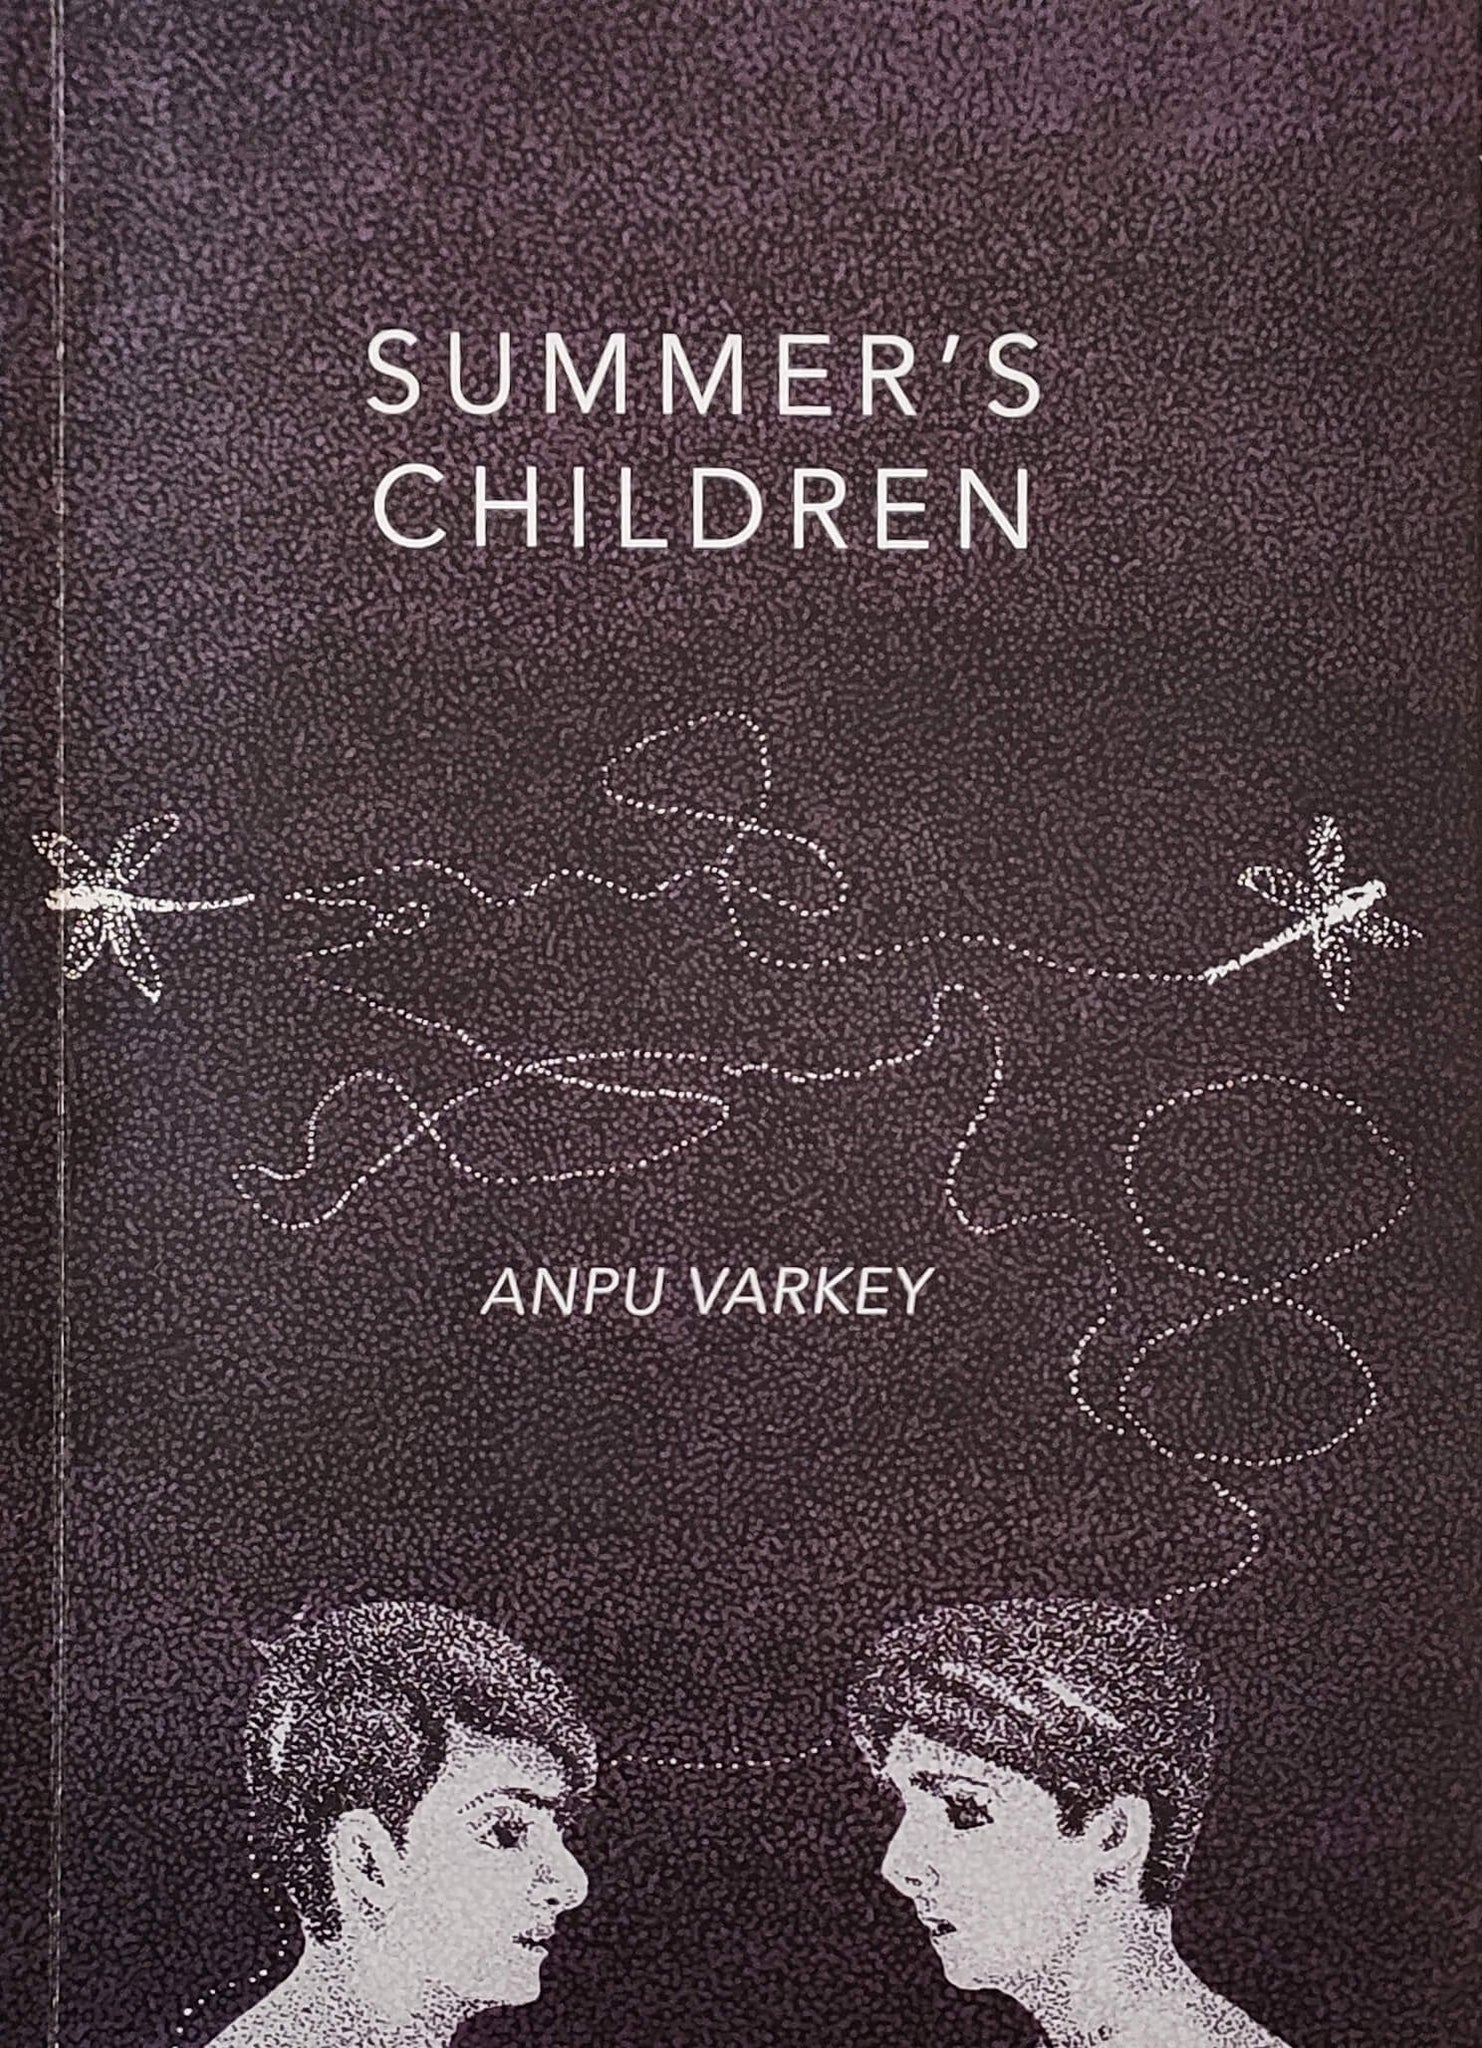 Summer's Children